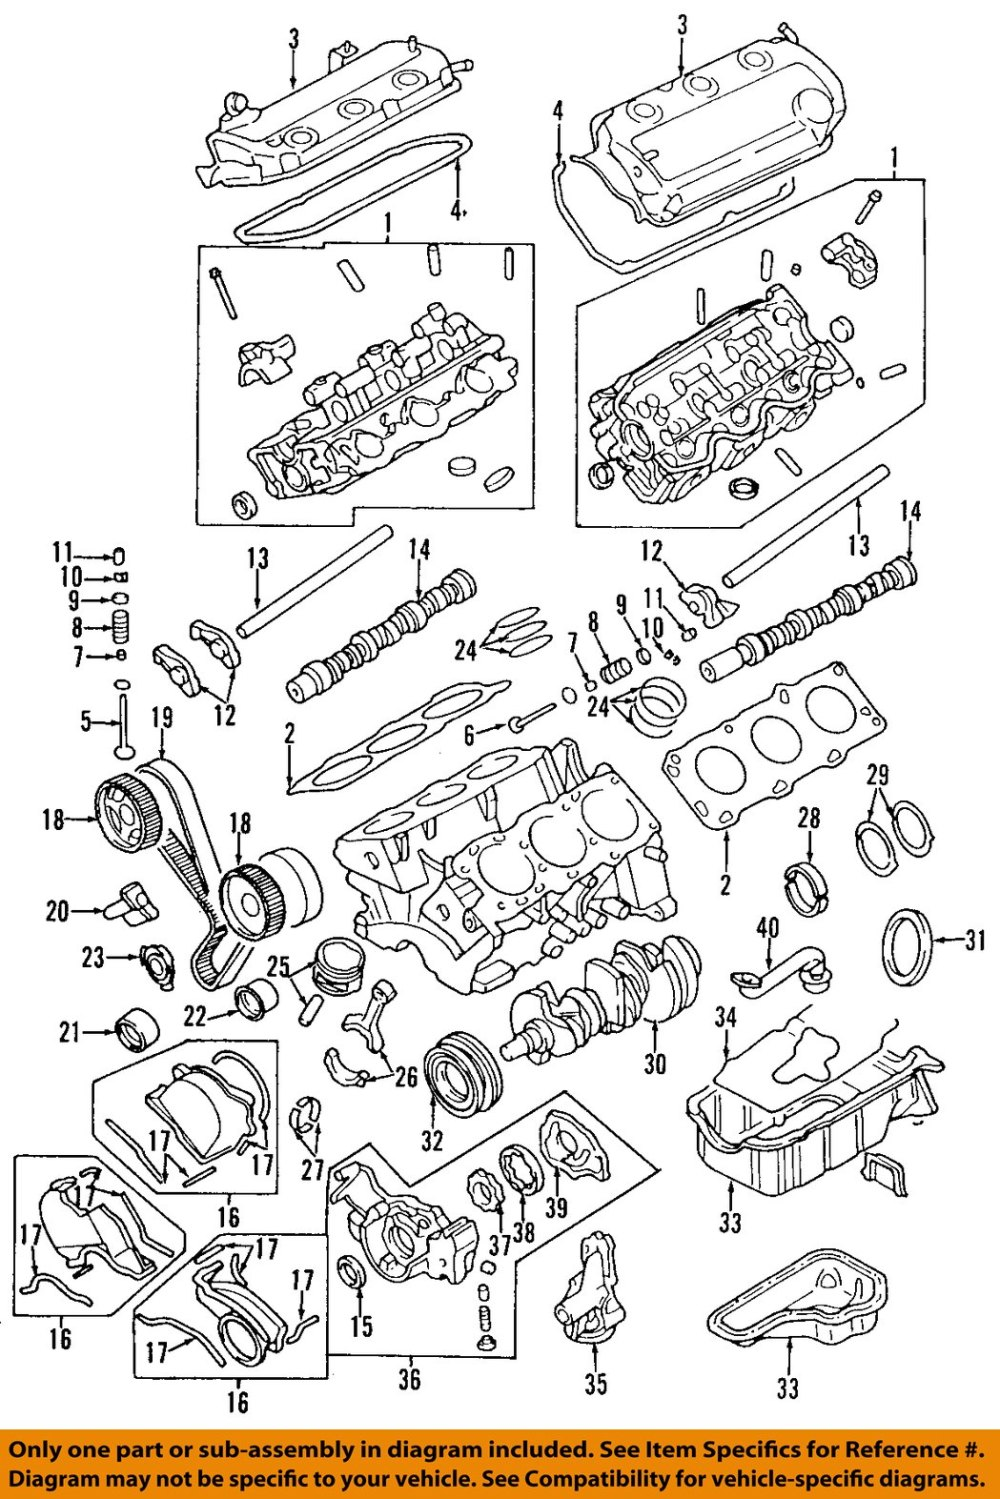 medium resolution of 2000 montero sport engine diagram wiring diagram operations 2000 montero sport engine diagram 2000 montero sport engine diagram